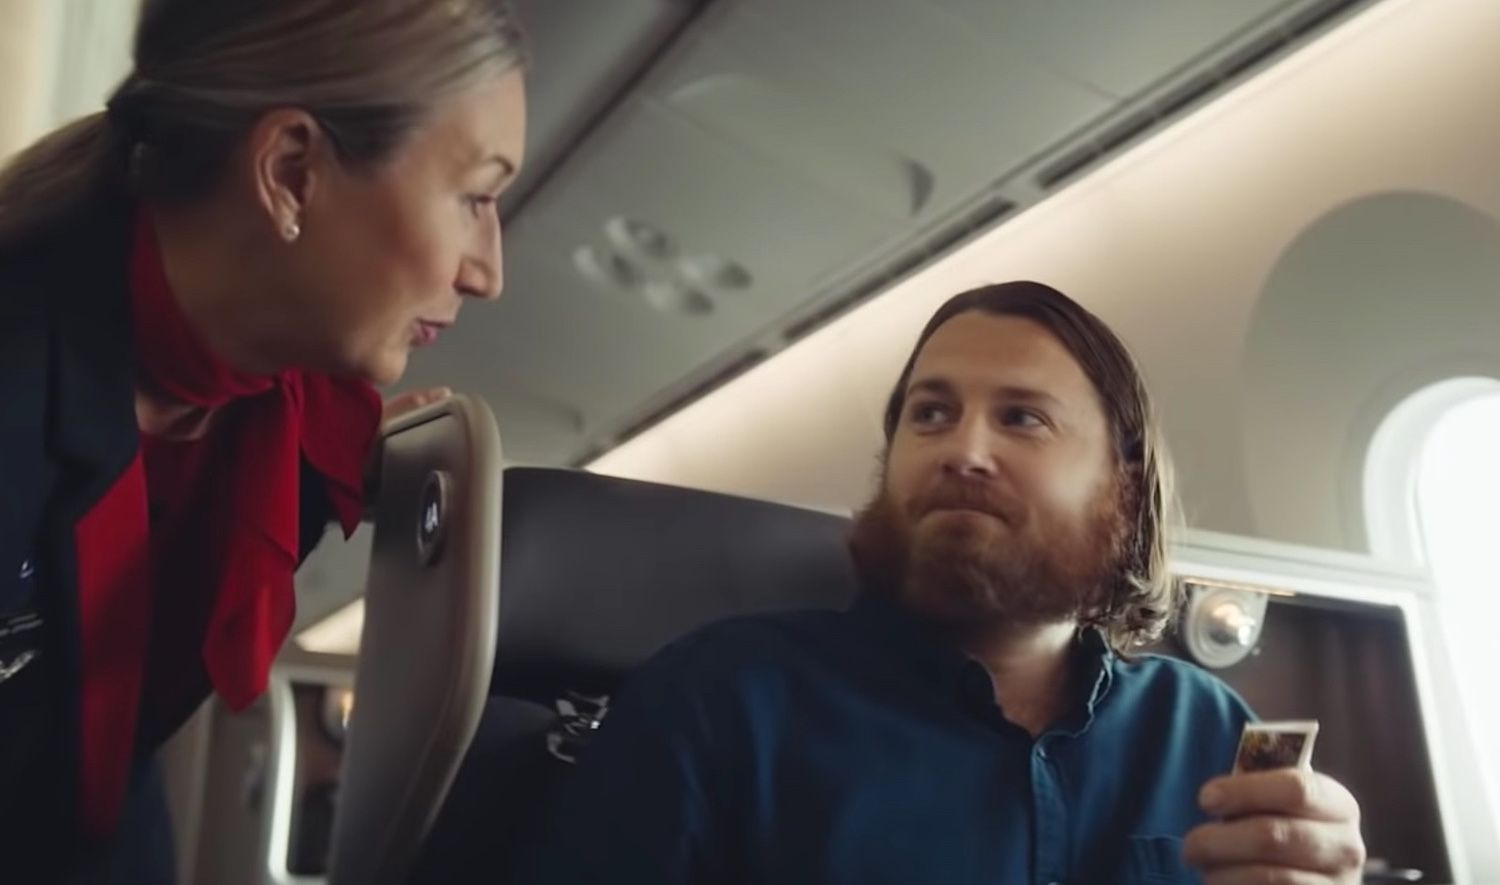 Watch: This Qantas commercial about the return of travel will give you all the feels